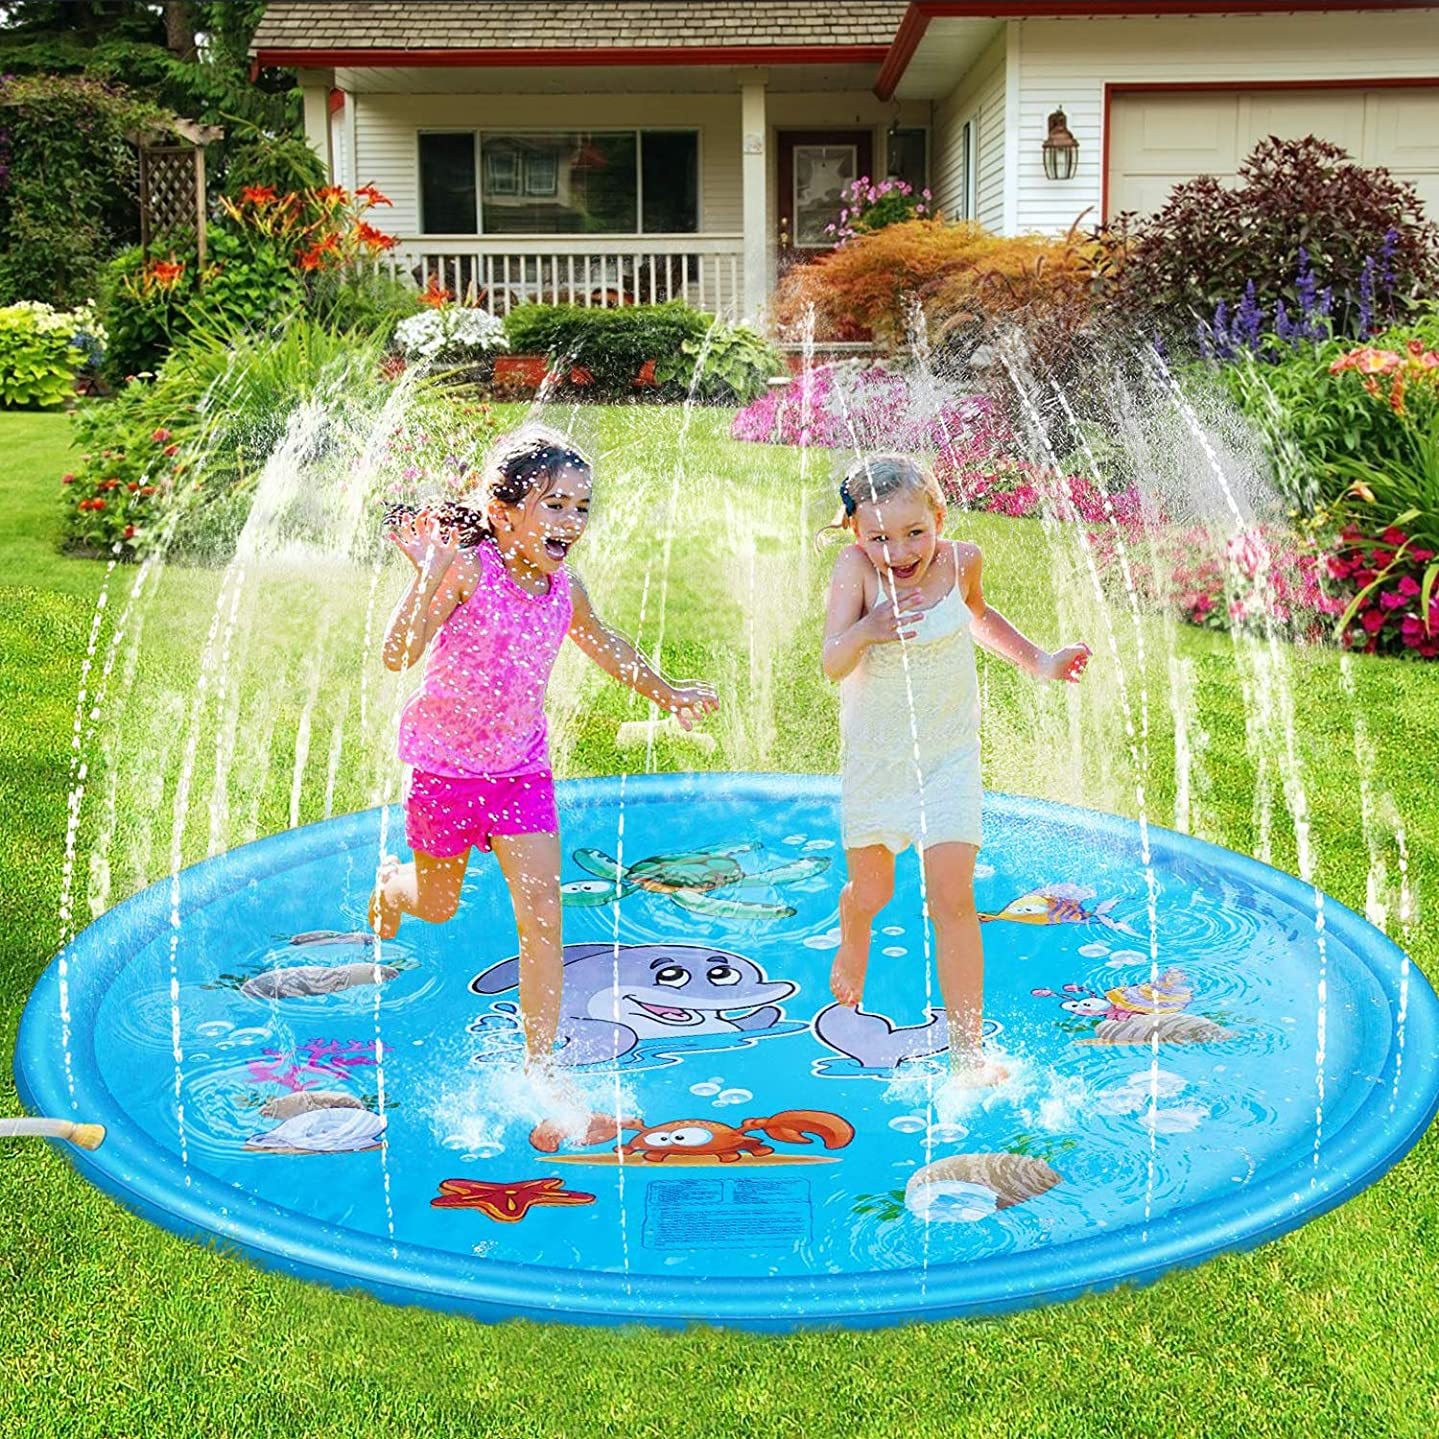 Splash Pad for Kids, 68'' Sprinkle and Splash Play Mat Children's Sprinkler Pool, Water Pad Toys Outdoor Party Sprinkler Toy for Babies and Toddlers